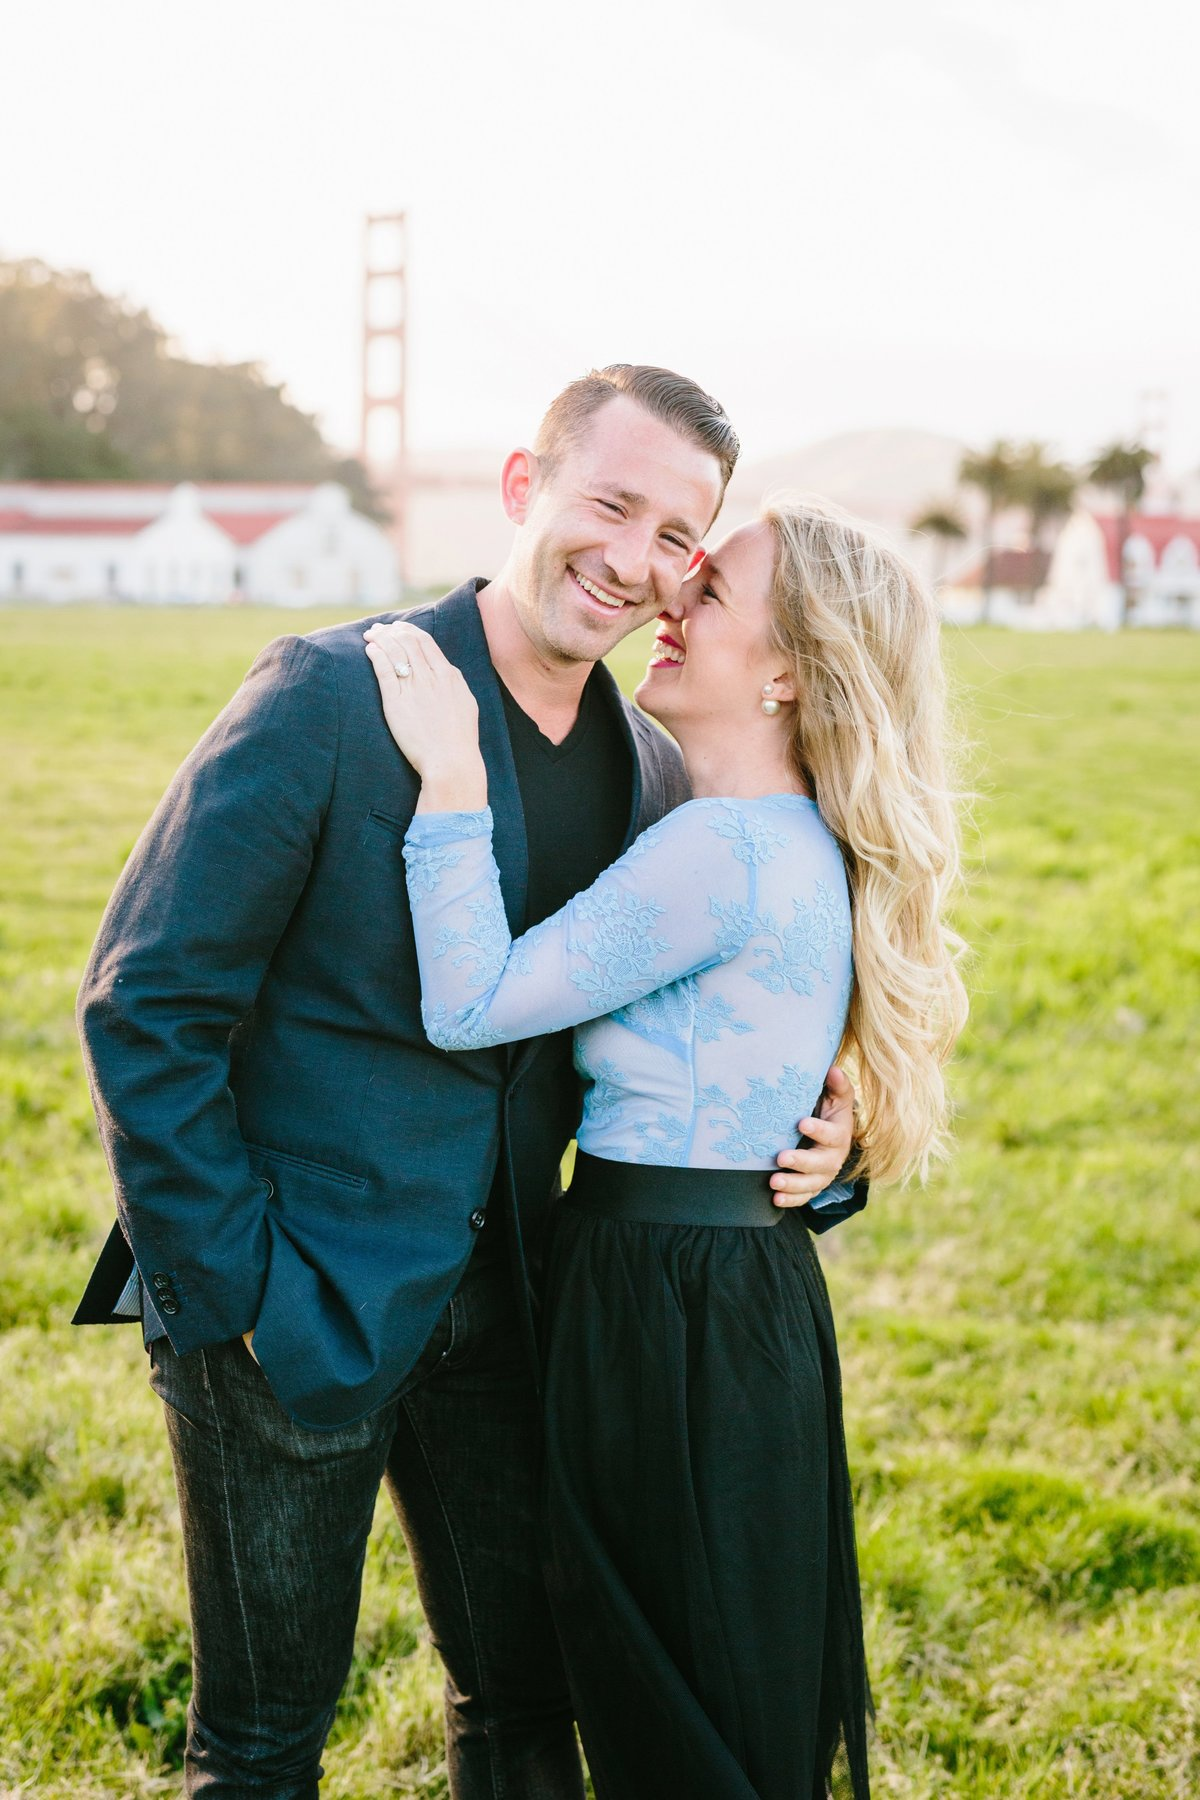 Best California Engagement Photographer-Jodee Debes Photography-129